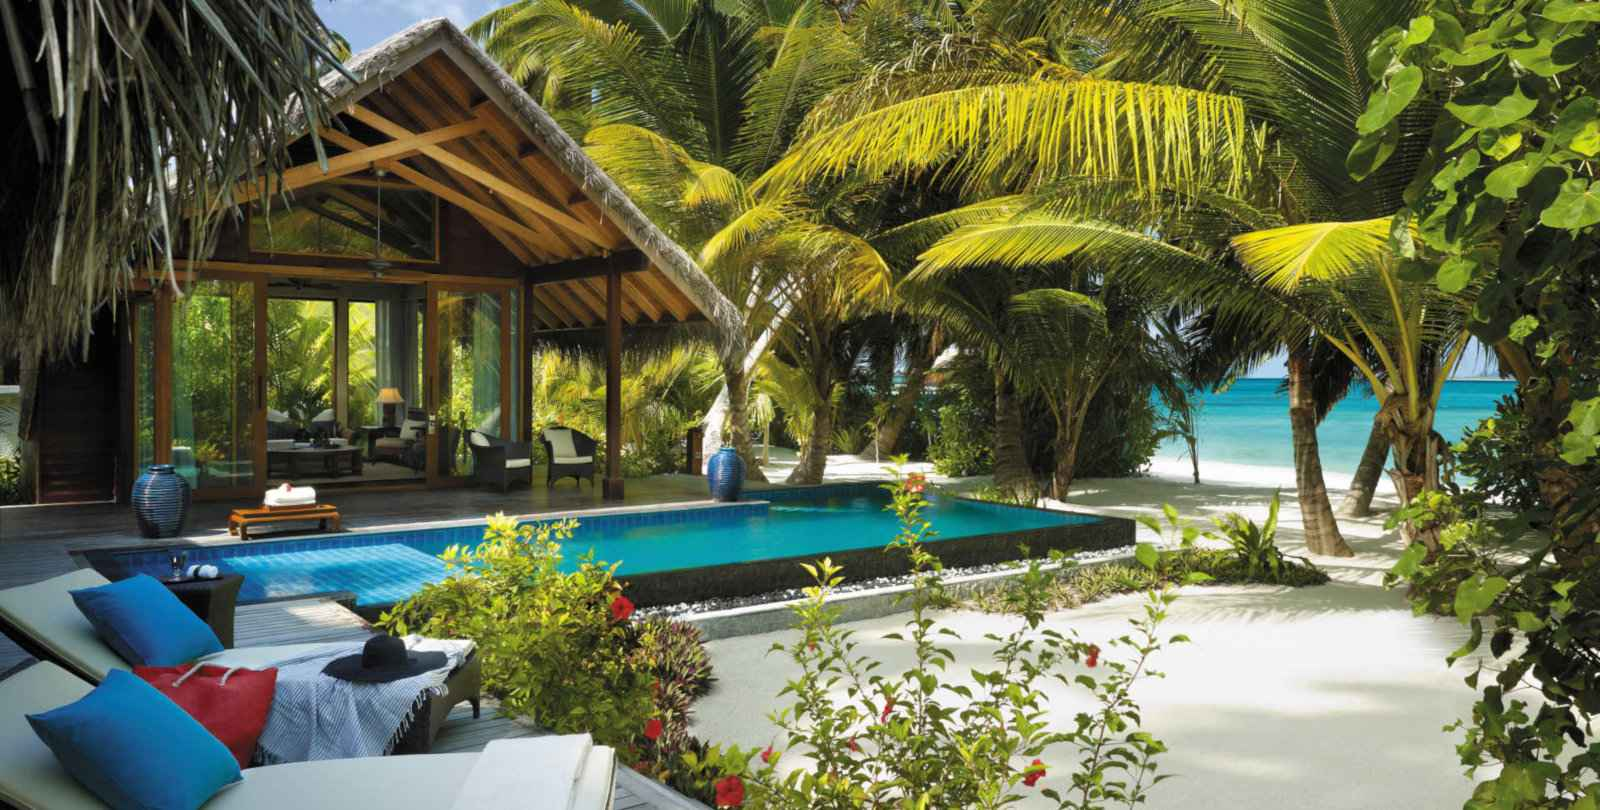 Stay in a jungle villa at the gay friendly Maldives Shangri La Villingili Resort.